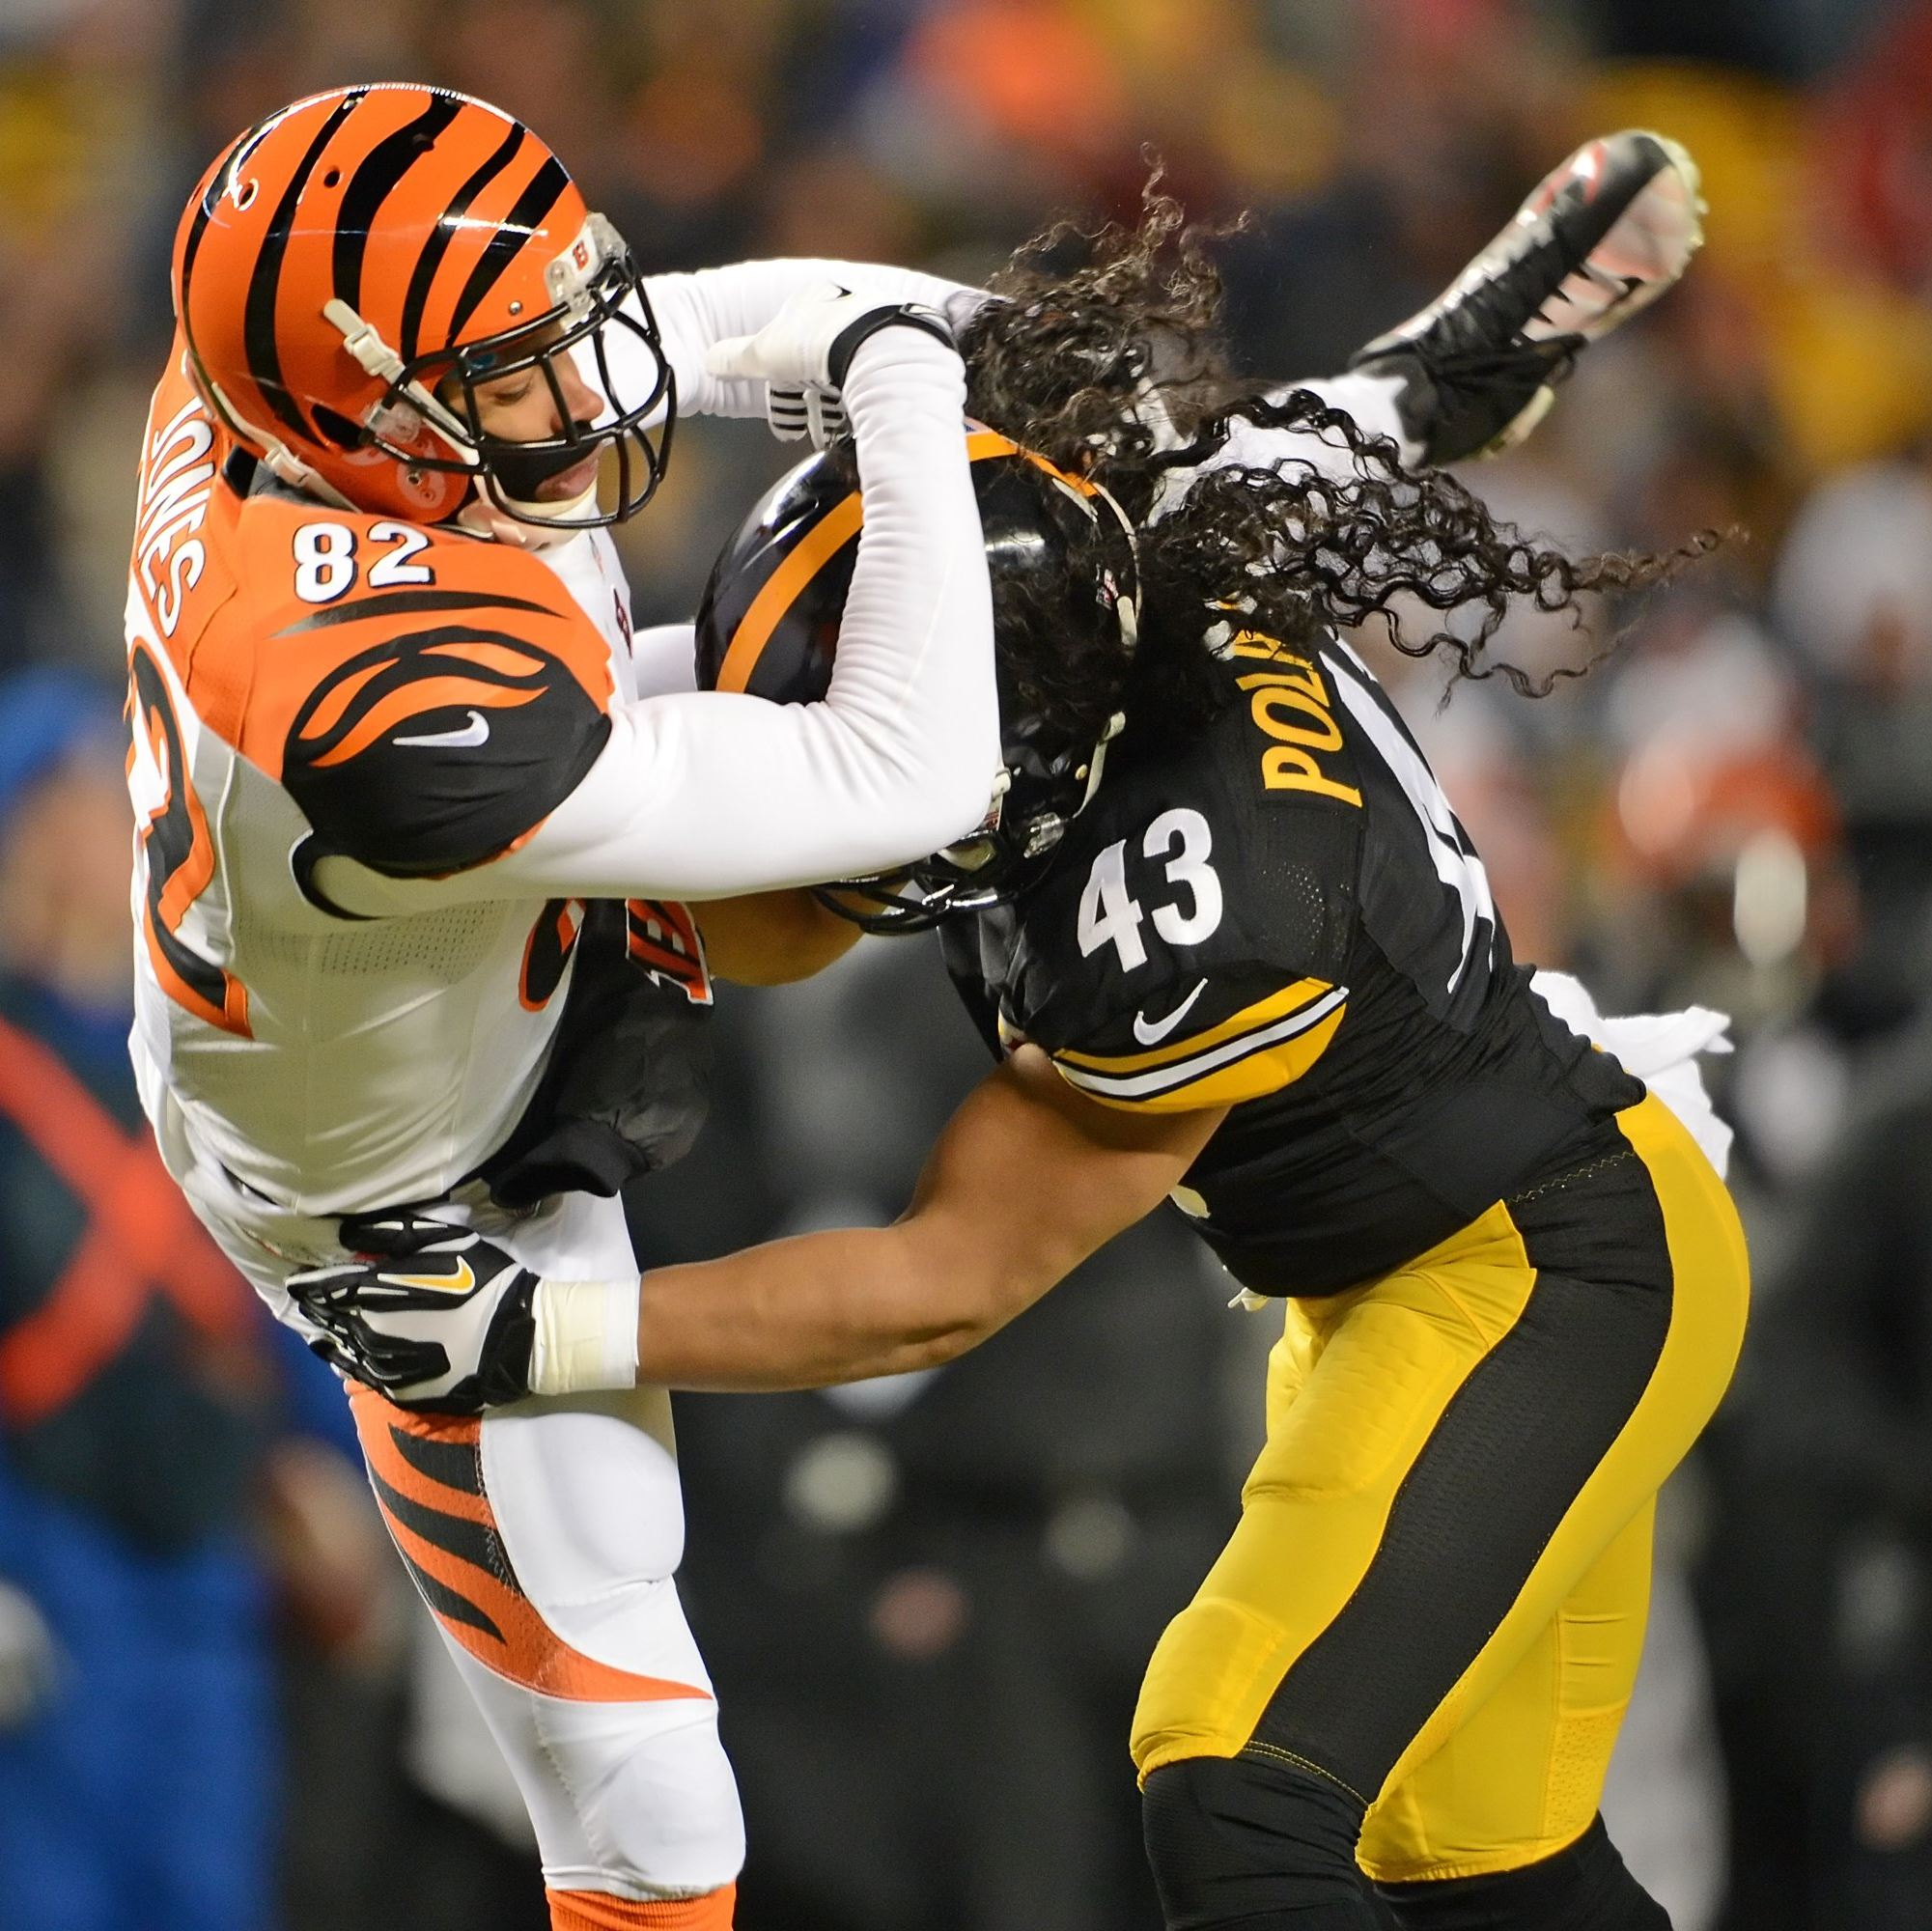 On The Steelers Defense Could Face Another Bad Year